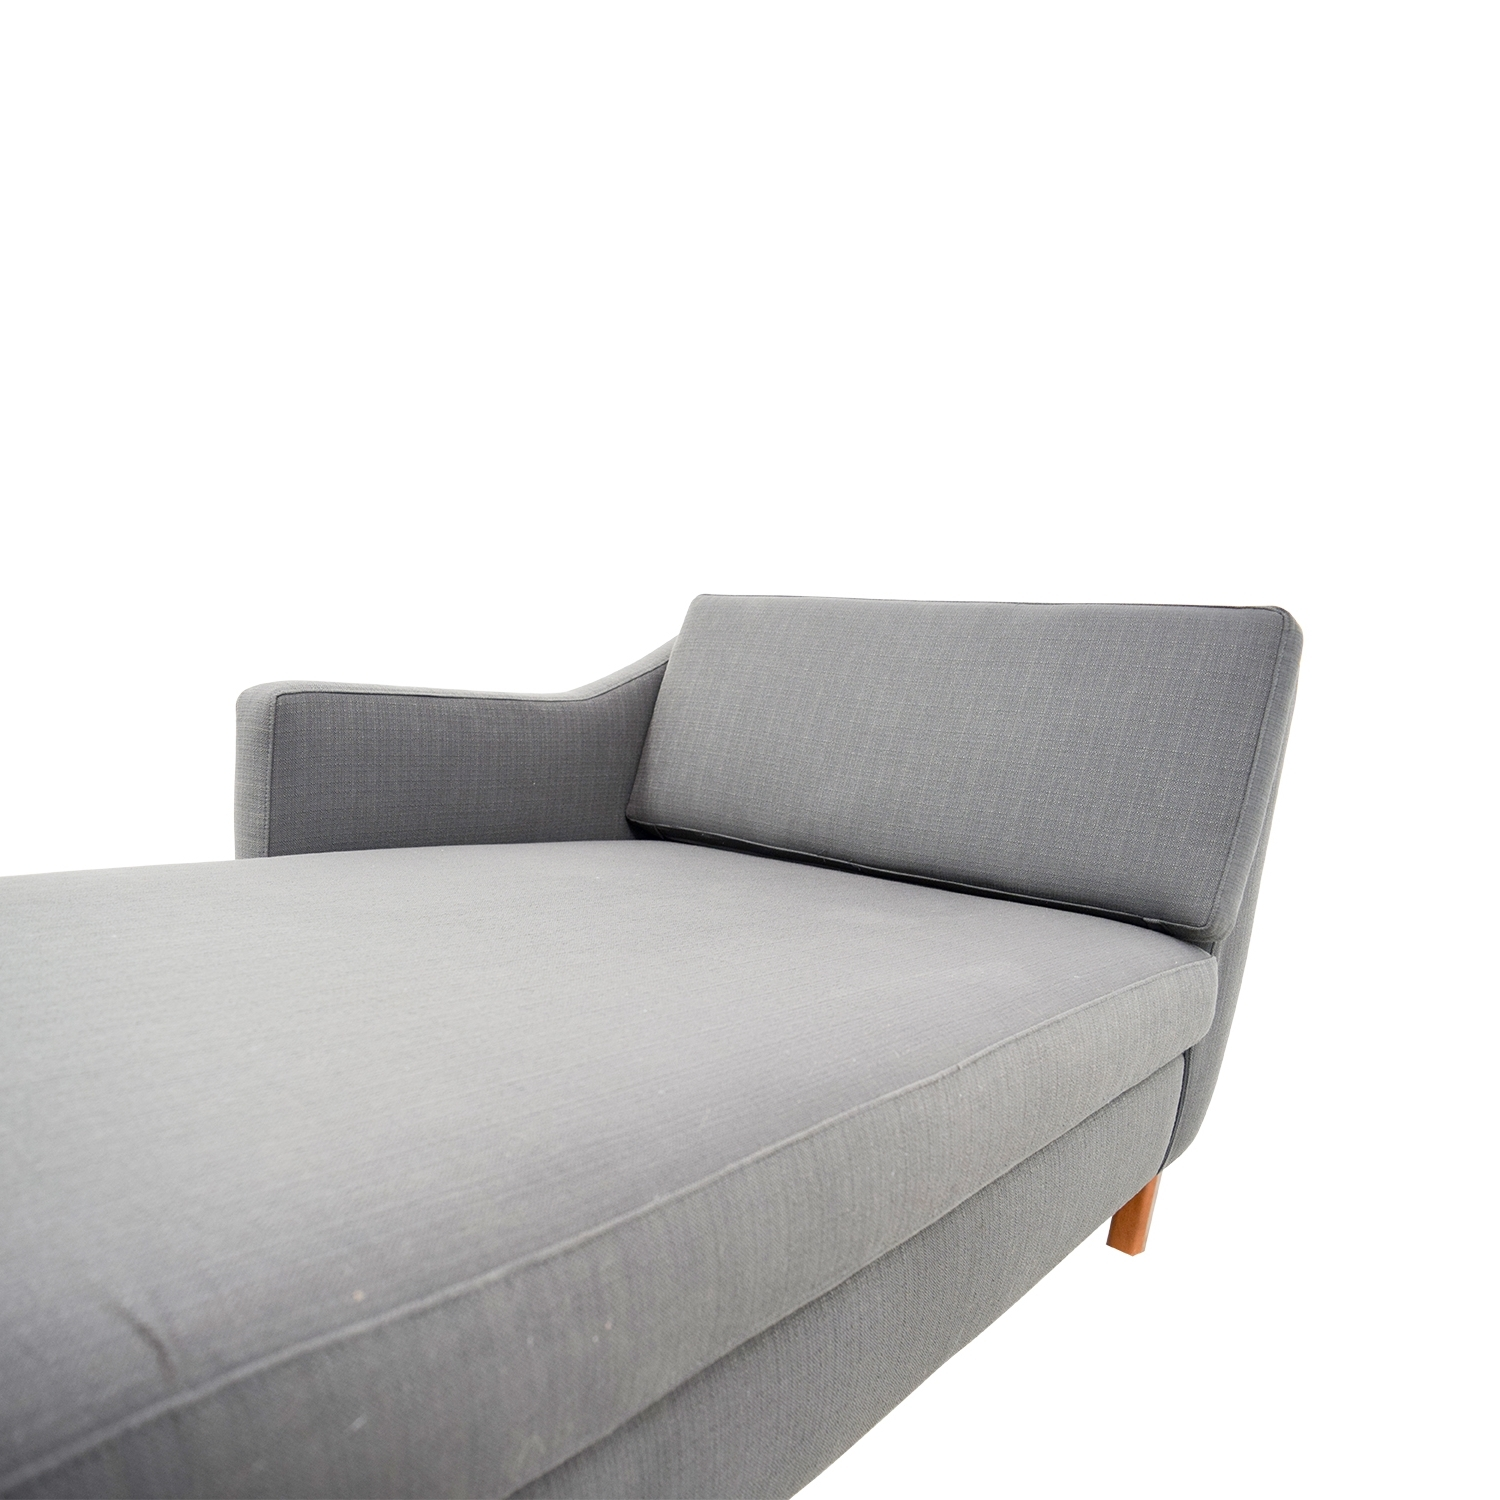 [%72% Off – Benchmade Modern Benchmade Modern Gray Single Arm Chaise With Regard To Well Known Gray Chaises|Gray Chaises In Current 72% Off – Benchmade Modern Benchmade Modern Gray Single Arm Chaise|Most Recently Released Gray Chaises Inside 72% Off – Benchmade Modern Benchmade Modern Gray Single Arm Chaise|Favorite 72% Off – Benchmade Modern Benchmade Modern Gray Single Arm Chaise Intended For Gray Chaises%] (View 2 of 15)